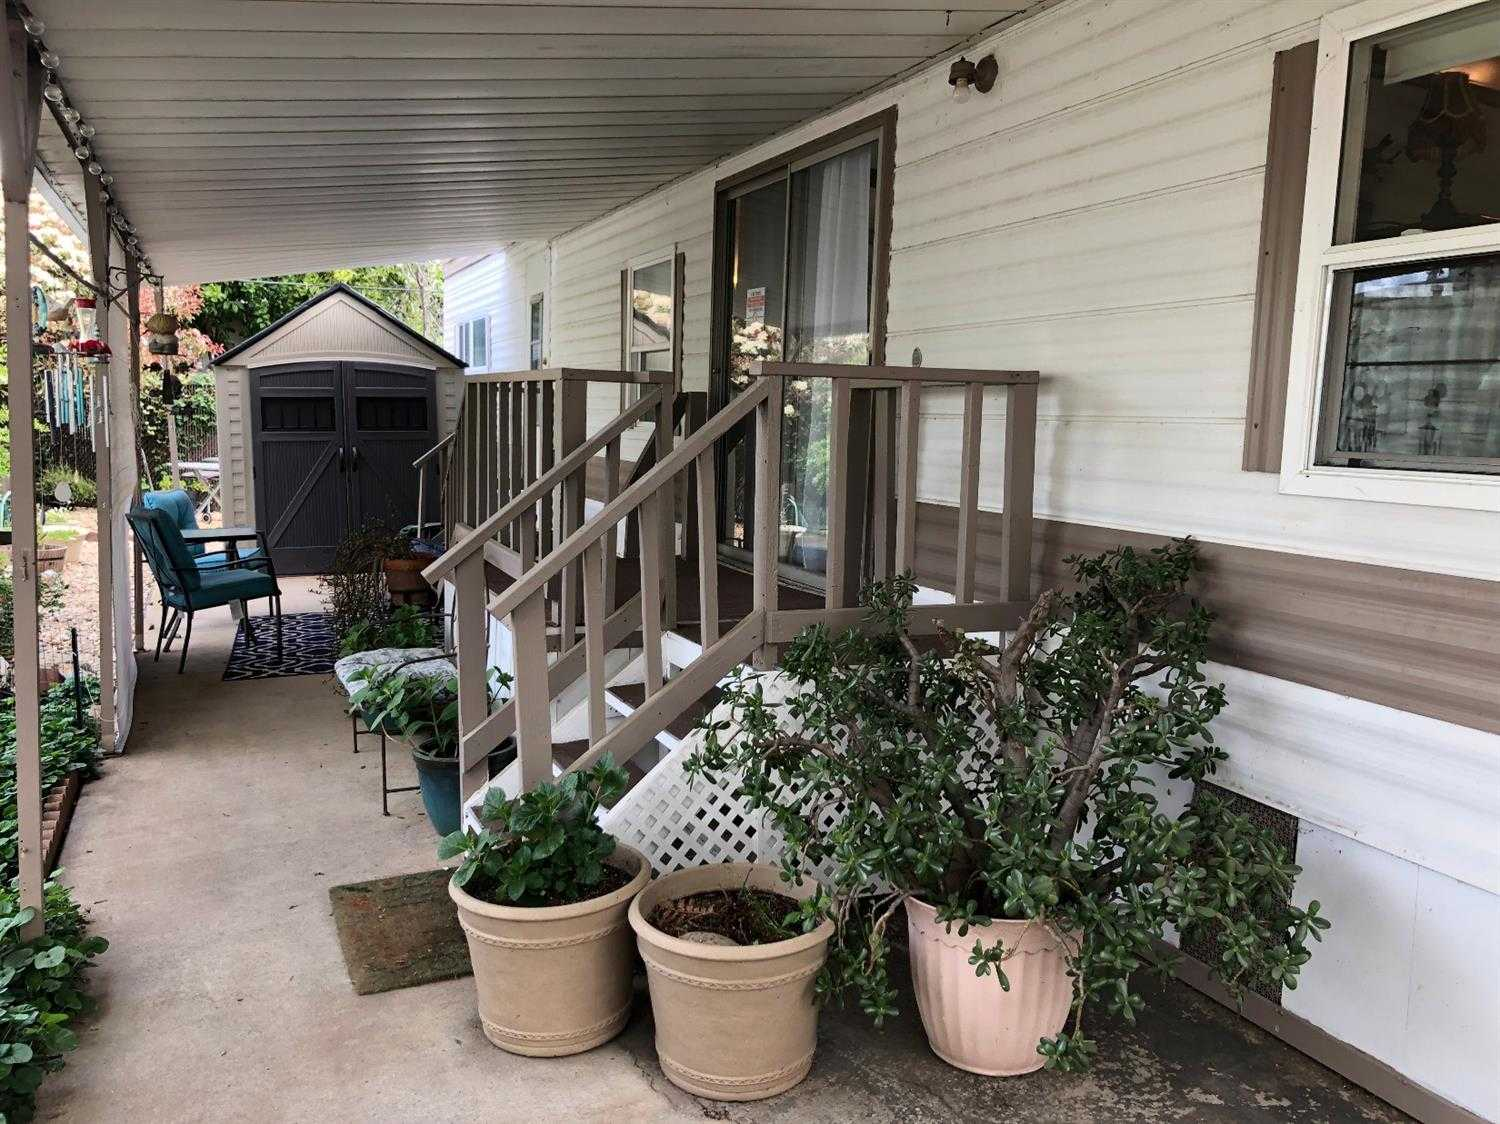 $18,000 - 1Br/1Ba -  for Sale in Ione